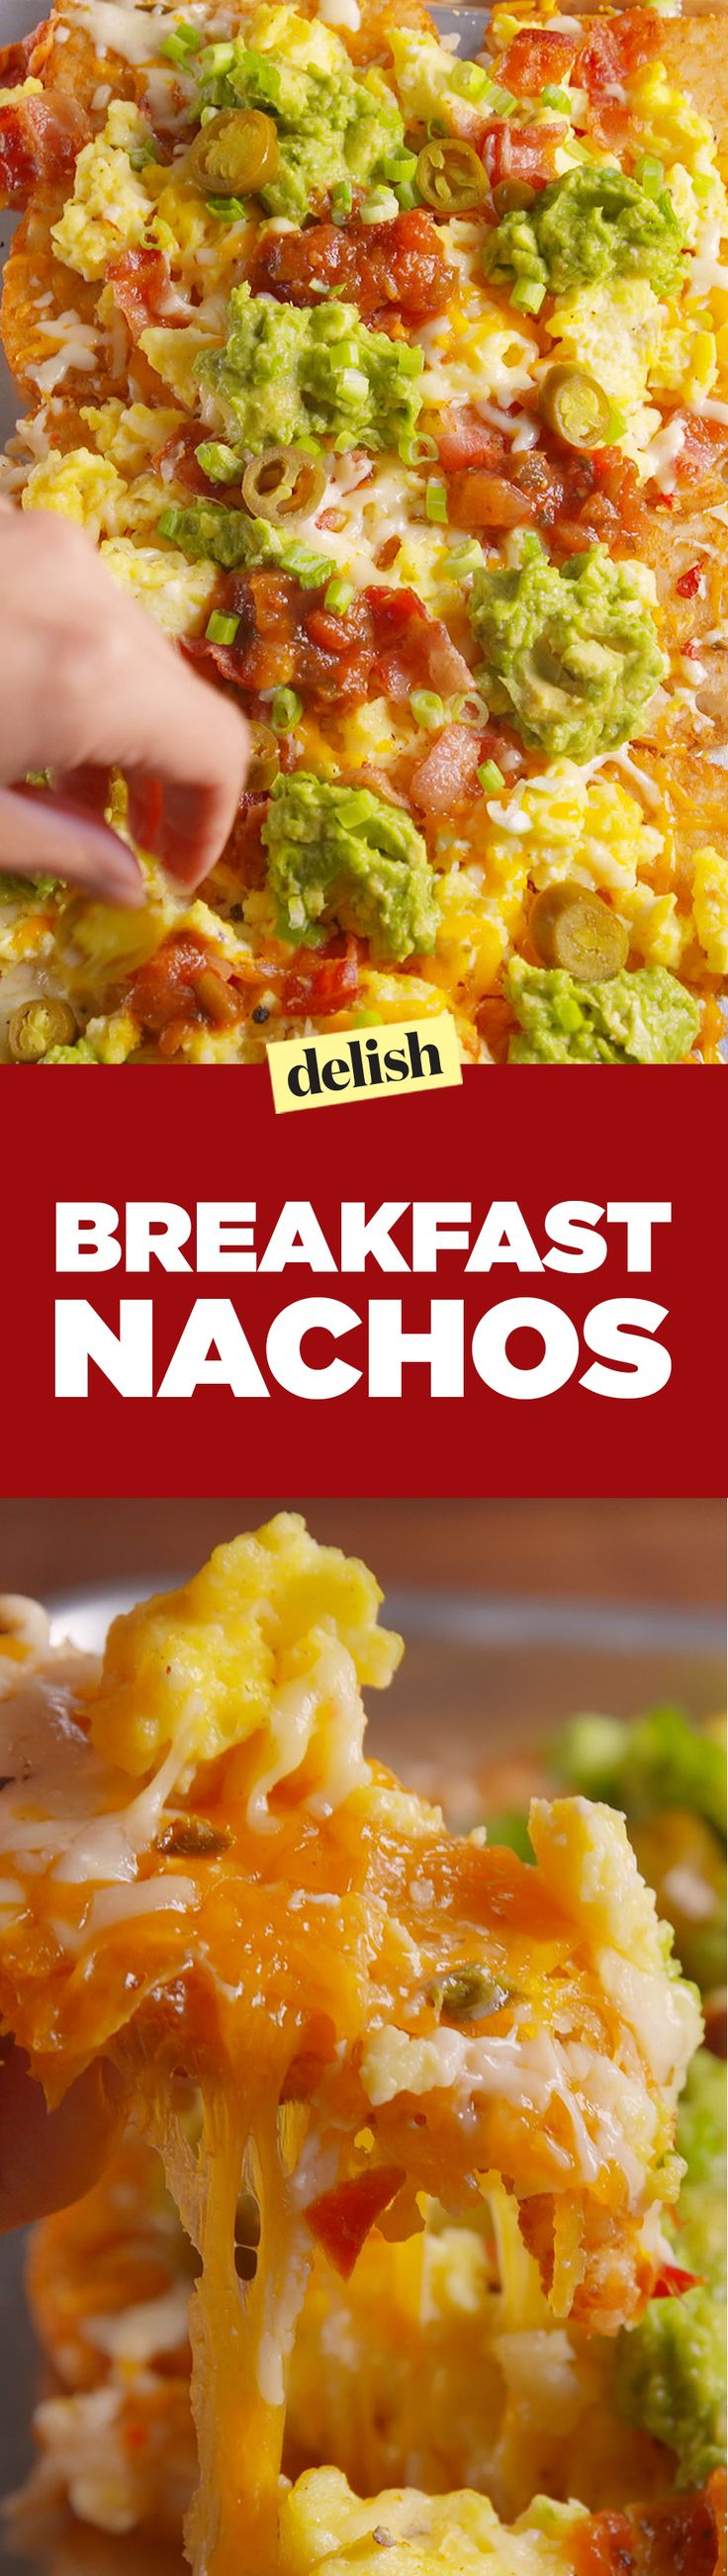 Breakfast nachos use hash browns instead of chips, and it's freaking awesome. Get the recipe on Delish.com.